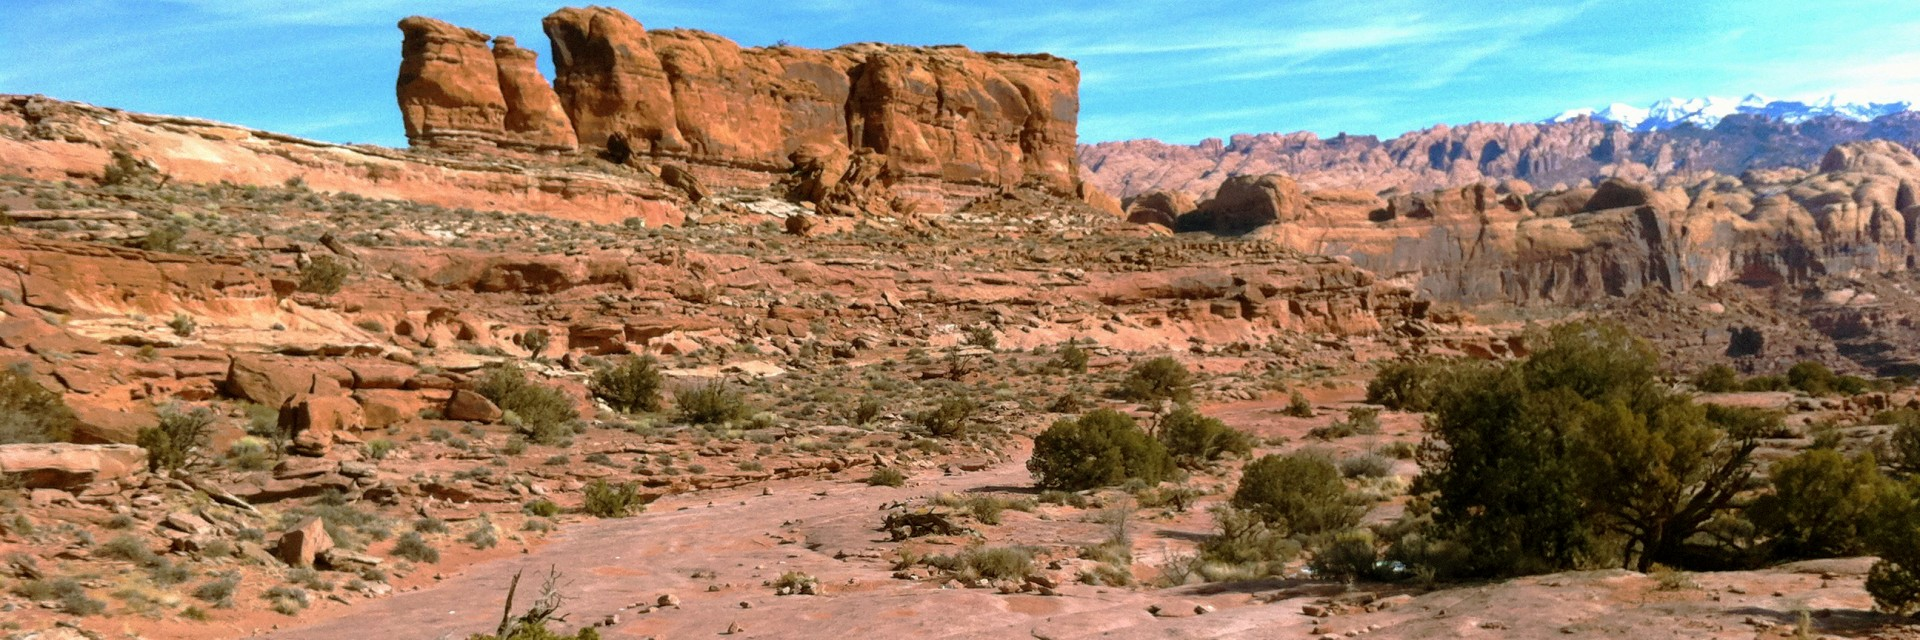 The Whale Rock is a prominent feature on the Captain Ahab singletrack section of Amasa Back guided mountain bike tour west of Moab, UT